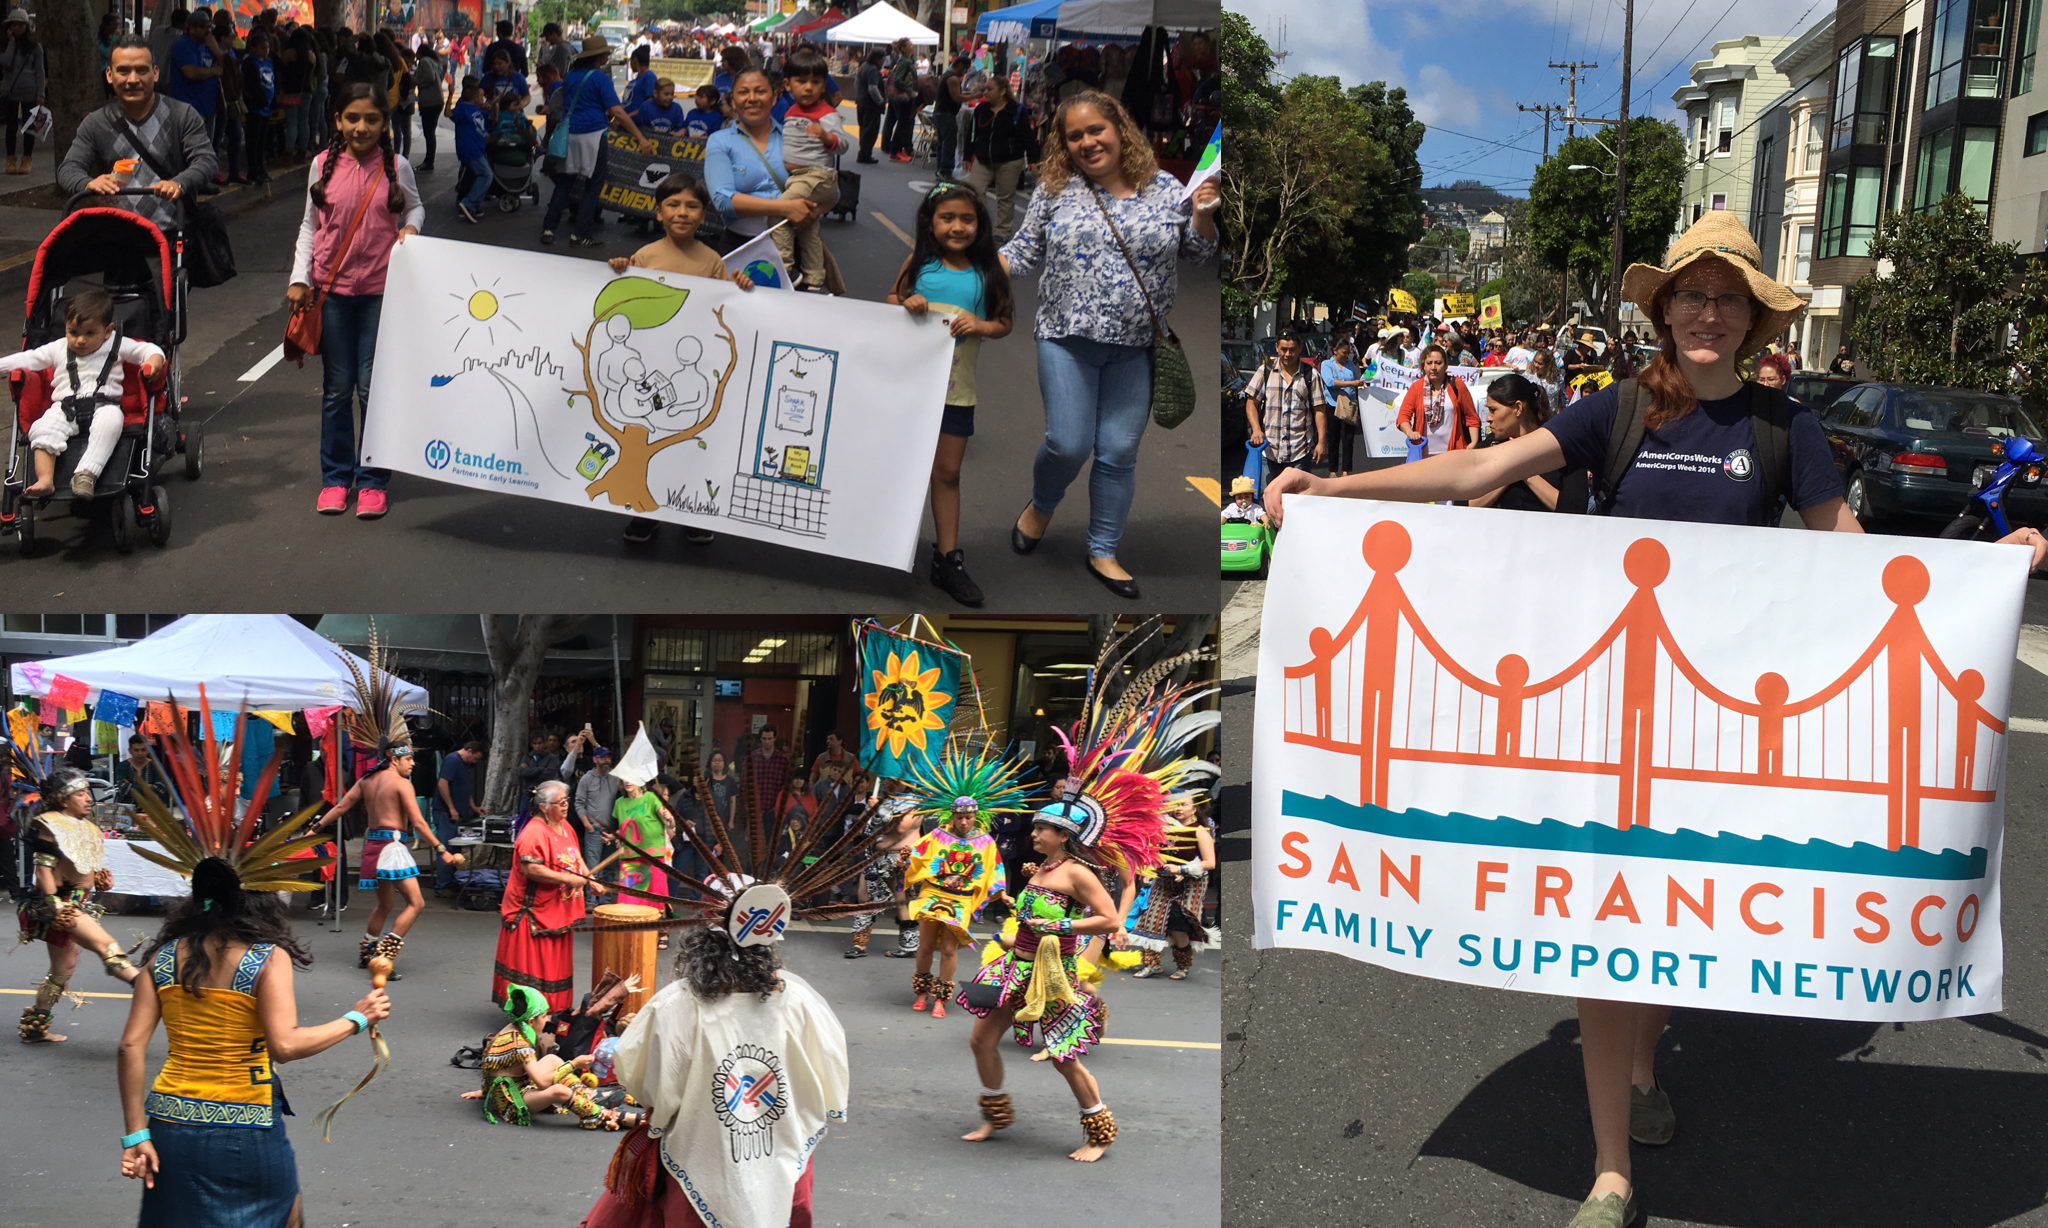 Cesar Chavez Day Parade, April 23, 2016. Top left: Literacy Champion volunteers carry the banner I designed for Tandem through the vibrant Cesar Chavez Day Parade in San Francisco's Mission District. Right: I got to carry the SFFSN banner and represent the San Francisco Family Support Network in the parade.